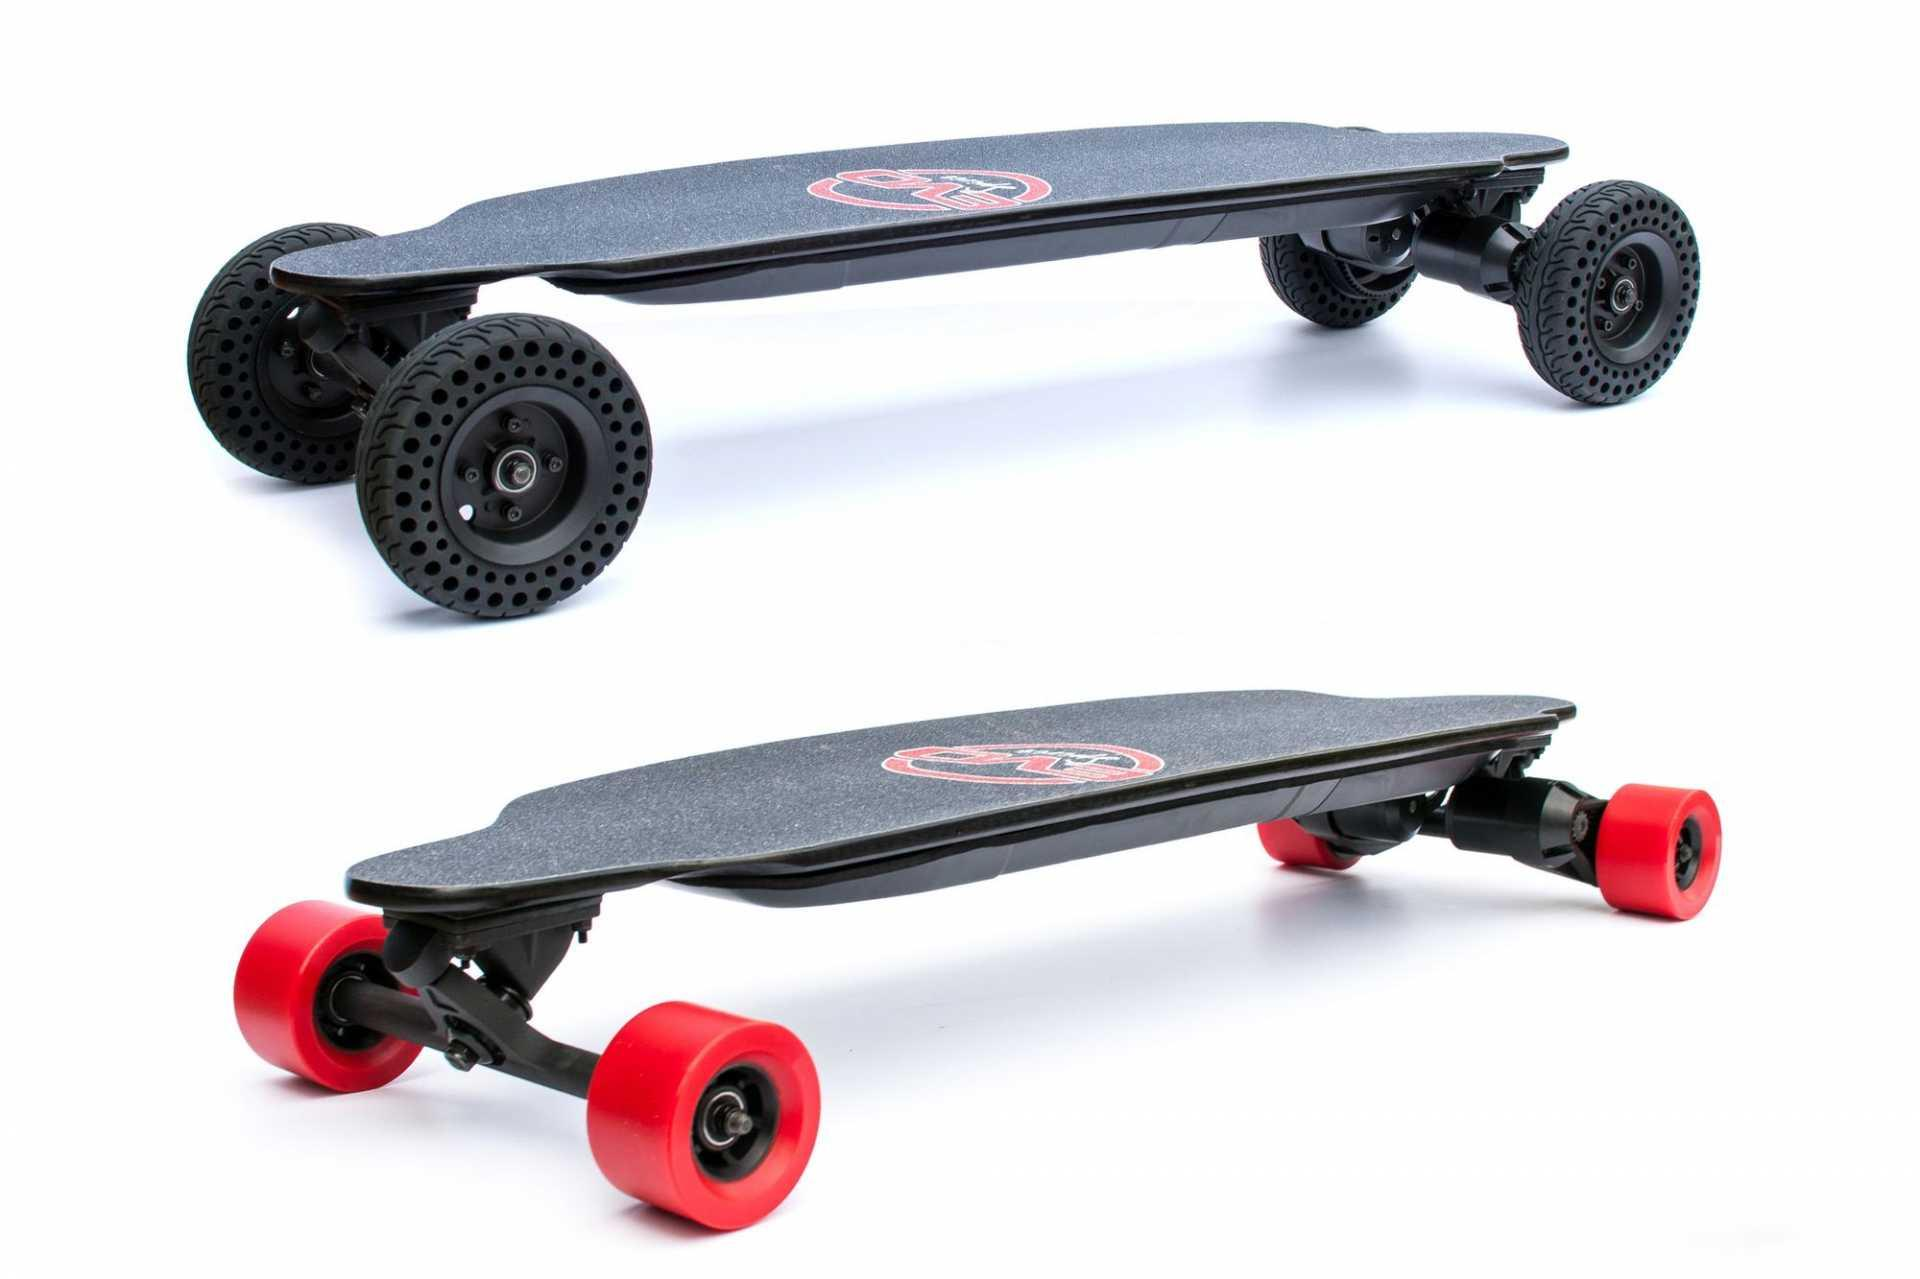 Evo-Spirit_Switcher-v1_skate-electrique-